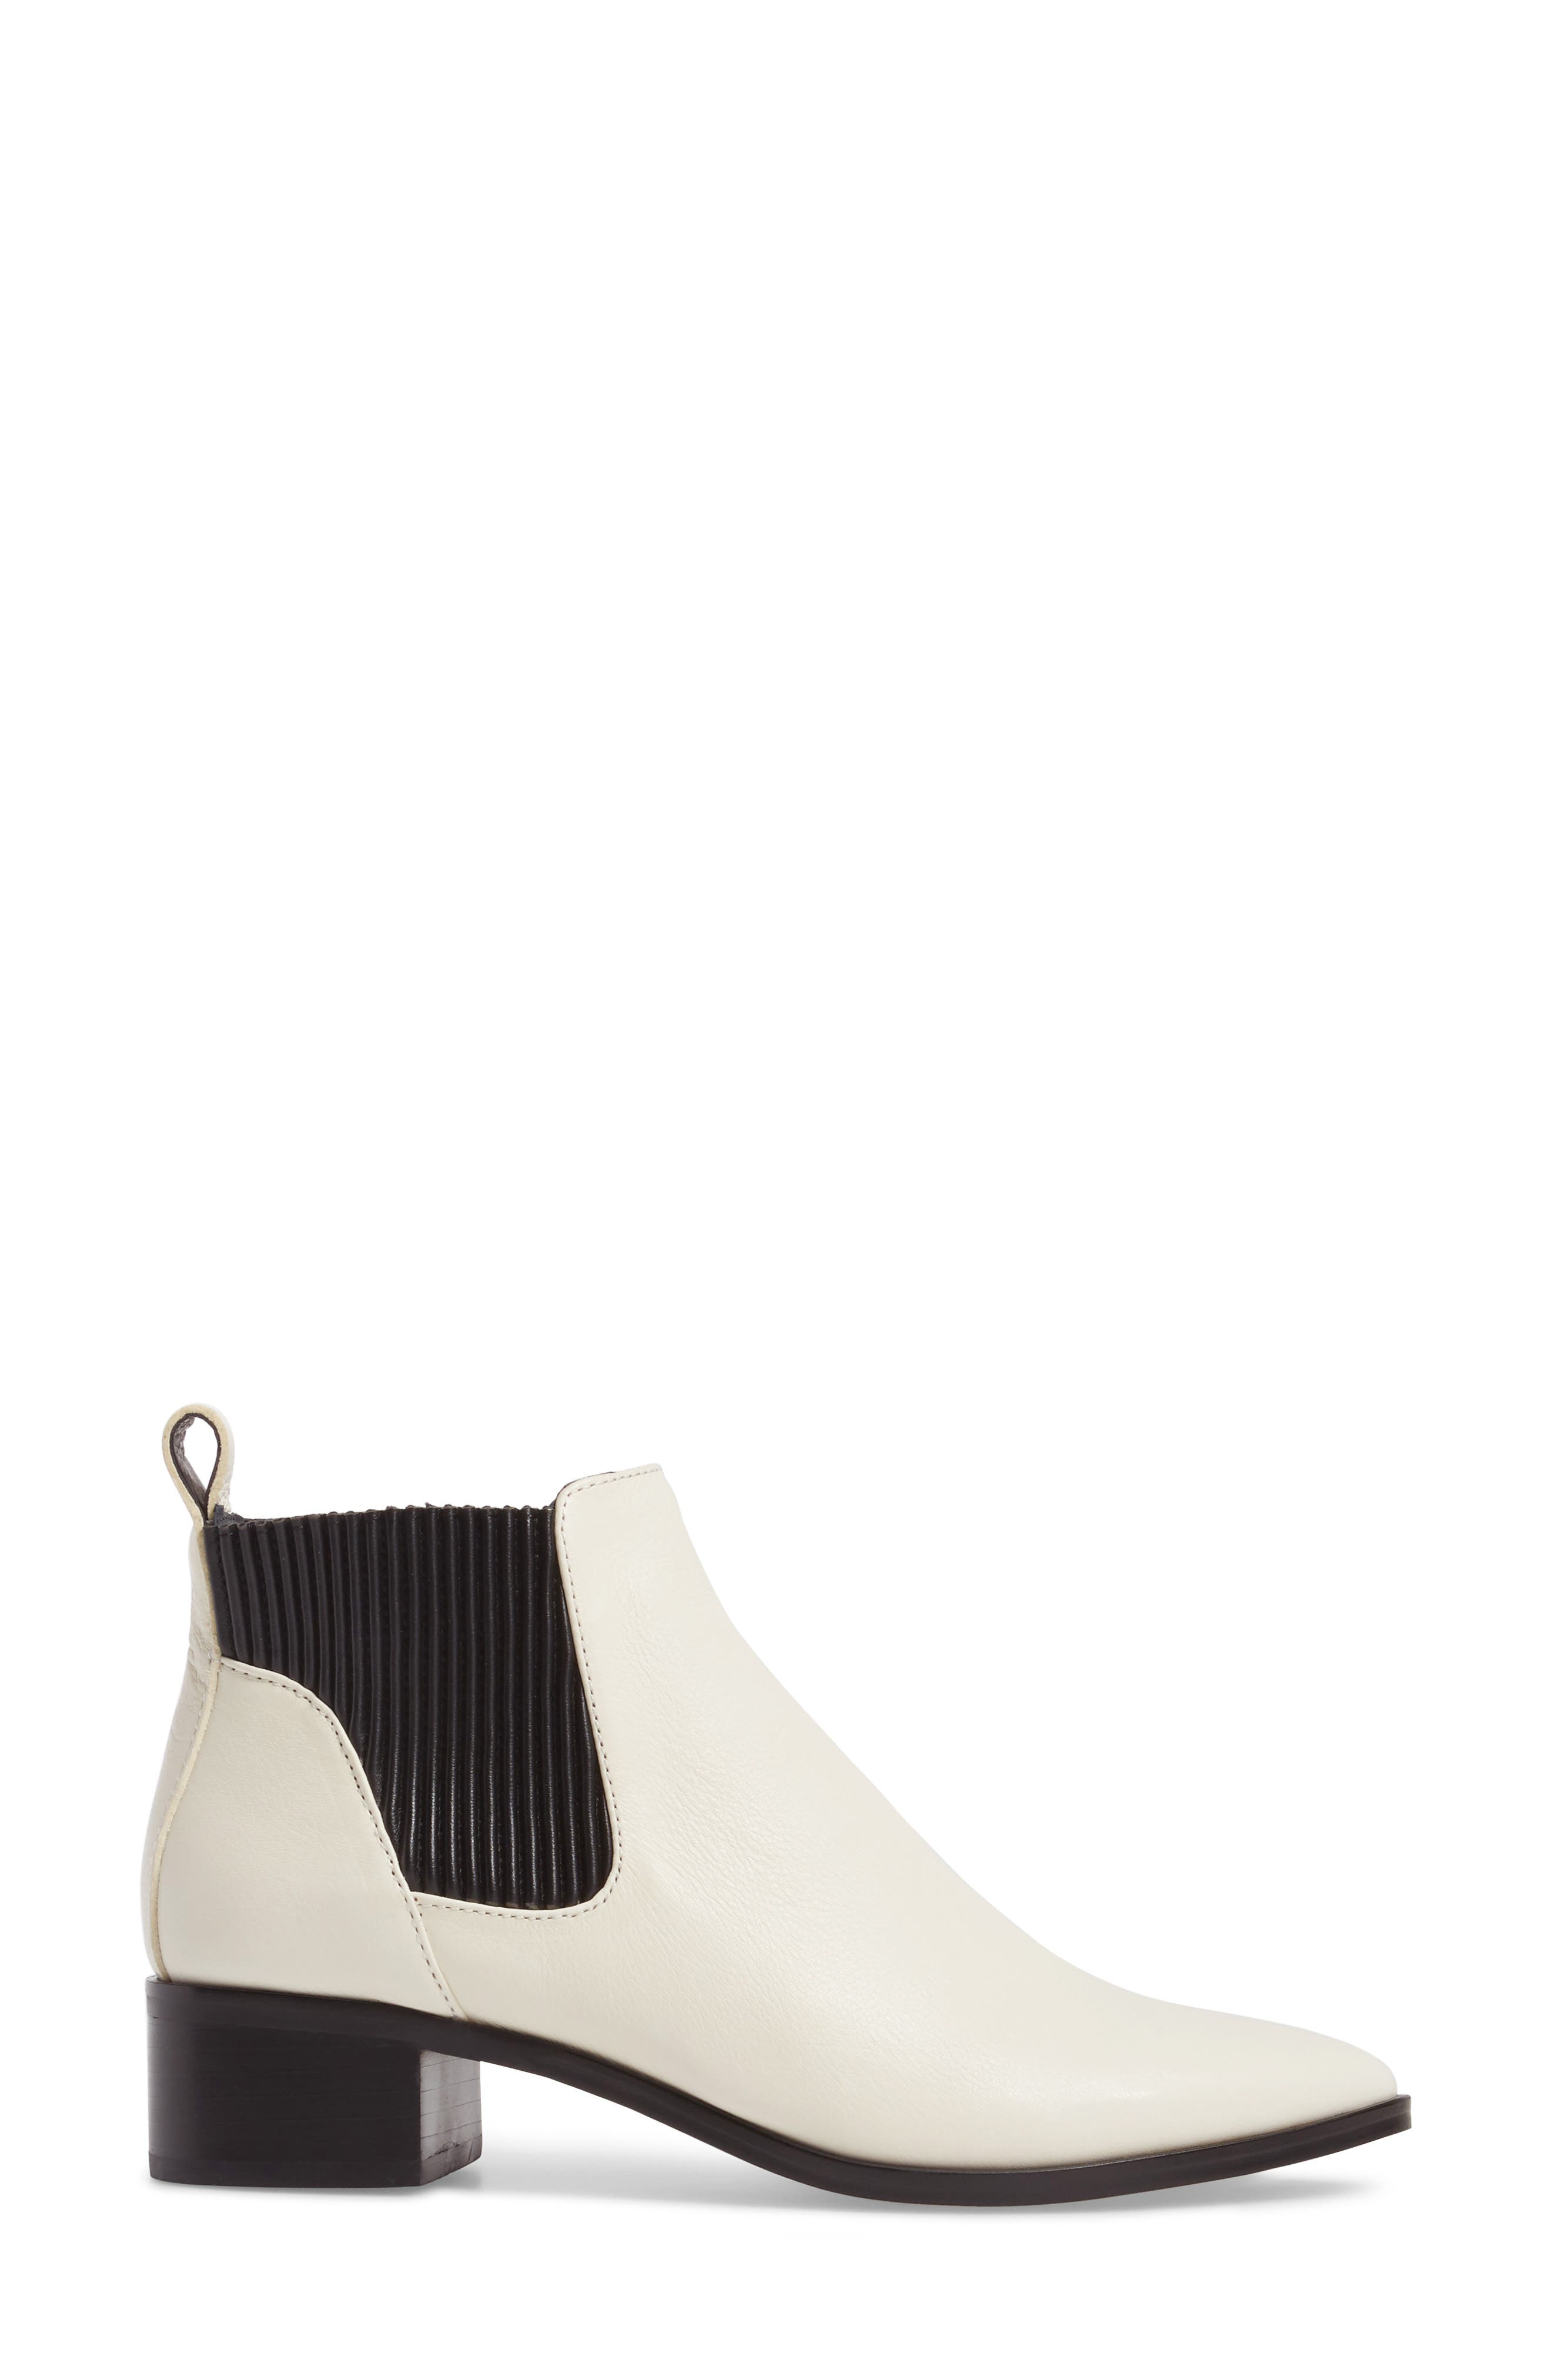 Macie Pointy Toe Chelsea Bootie,                             Alternate thumbnail 12, color,